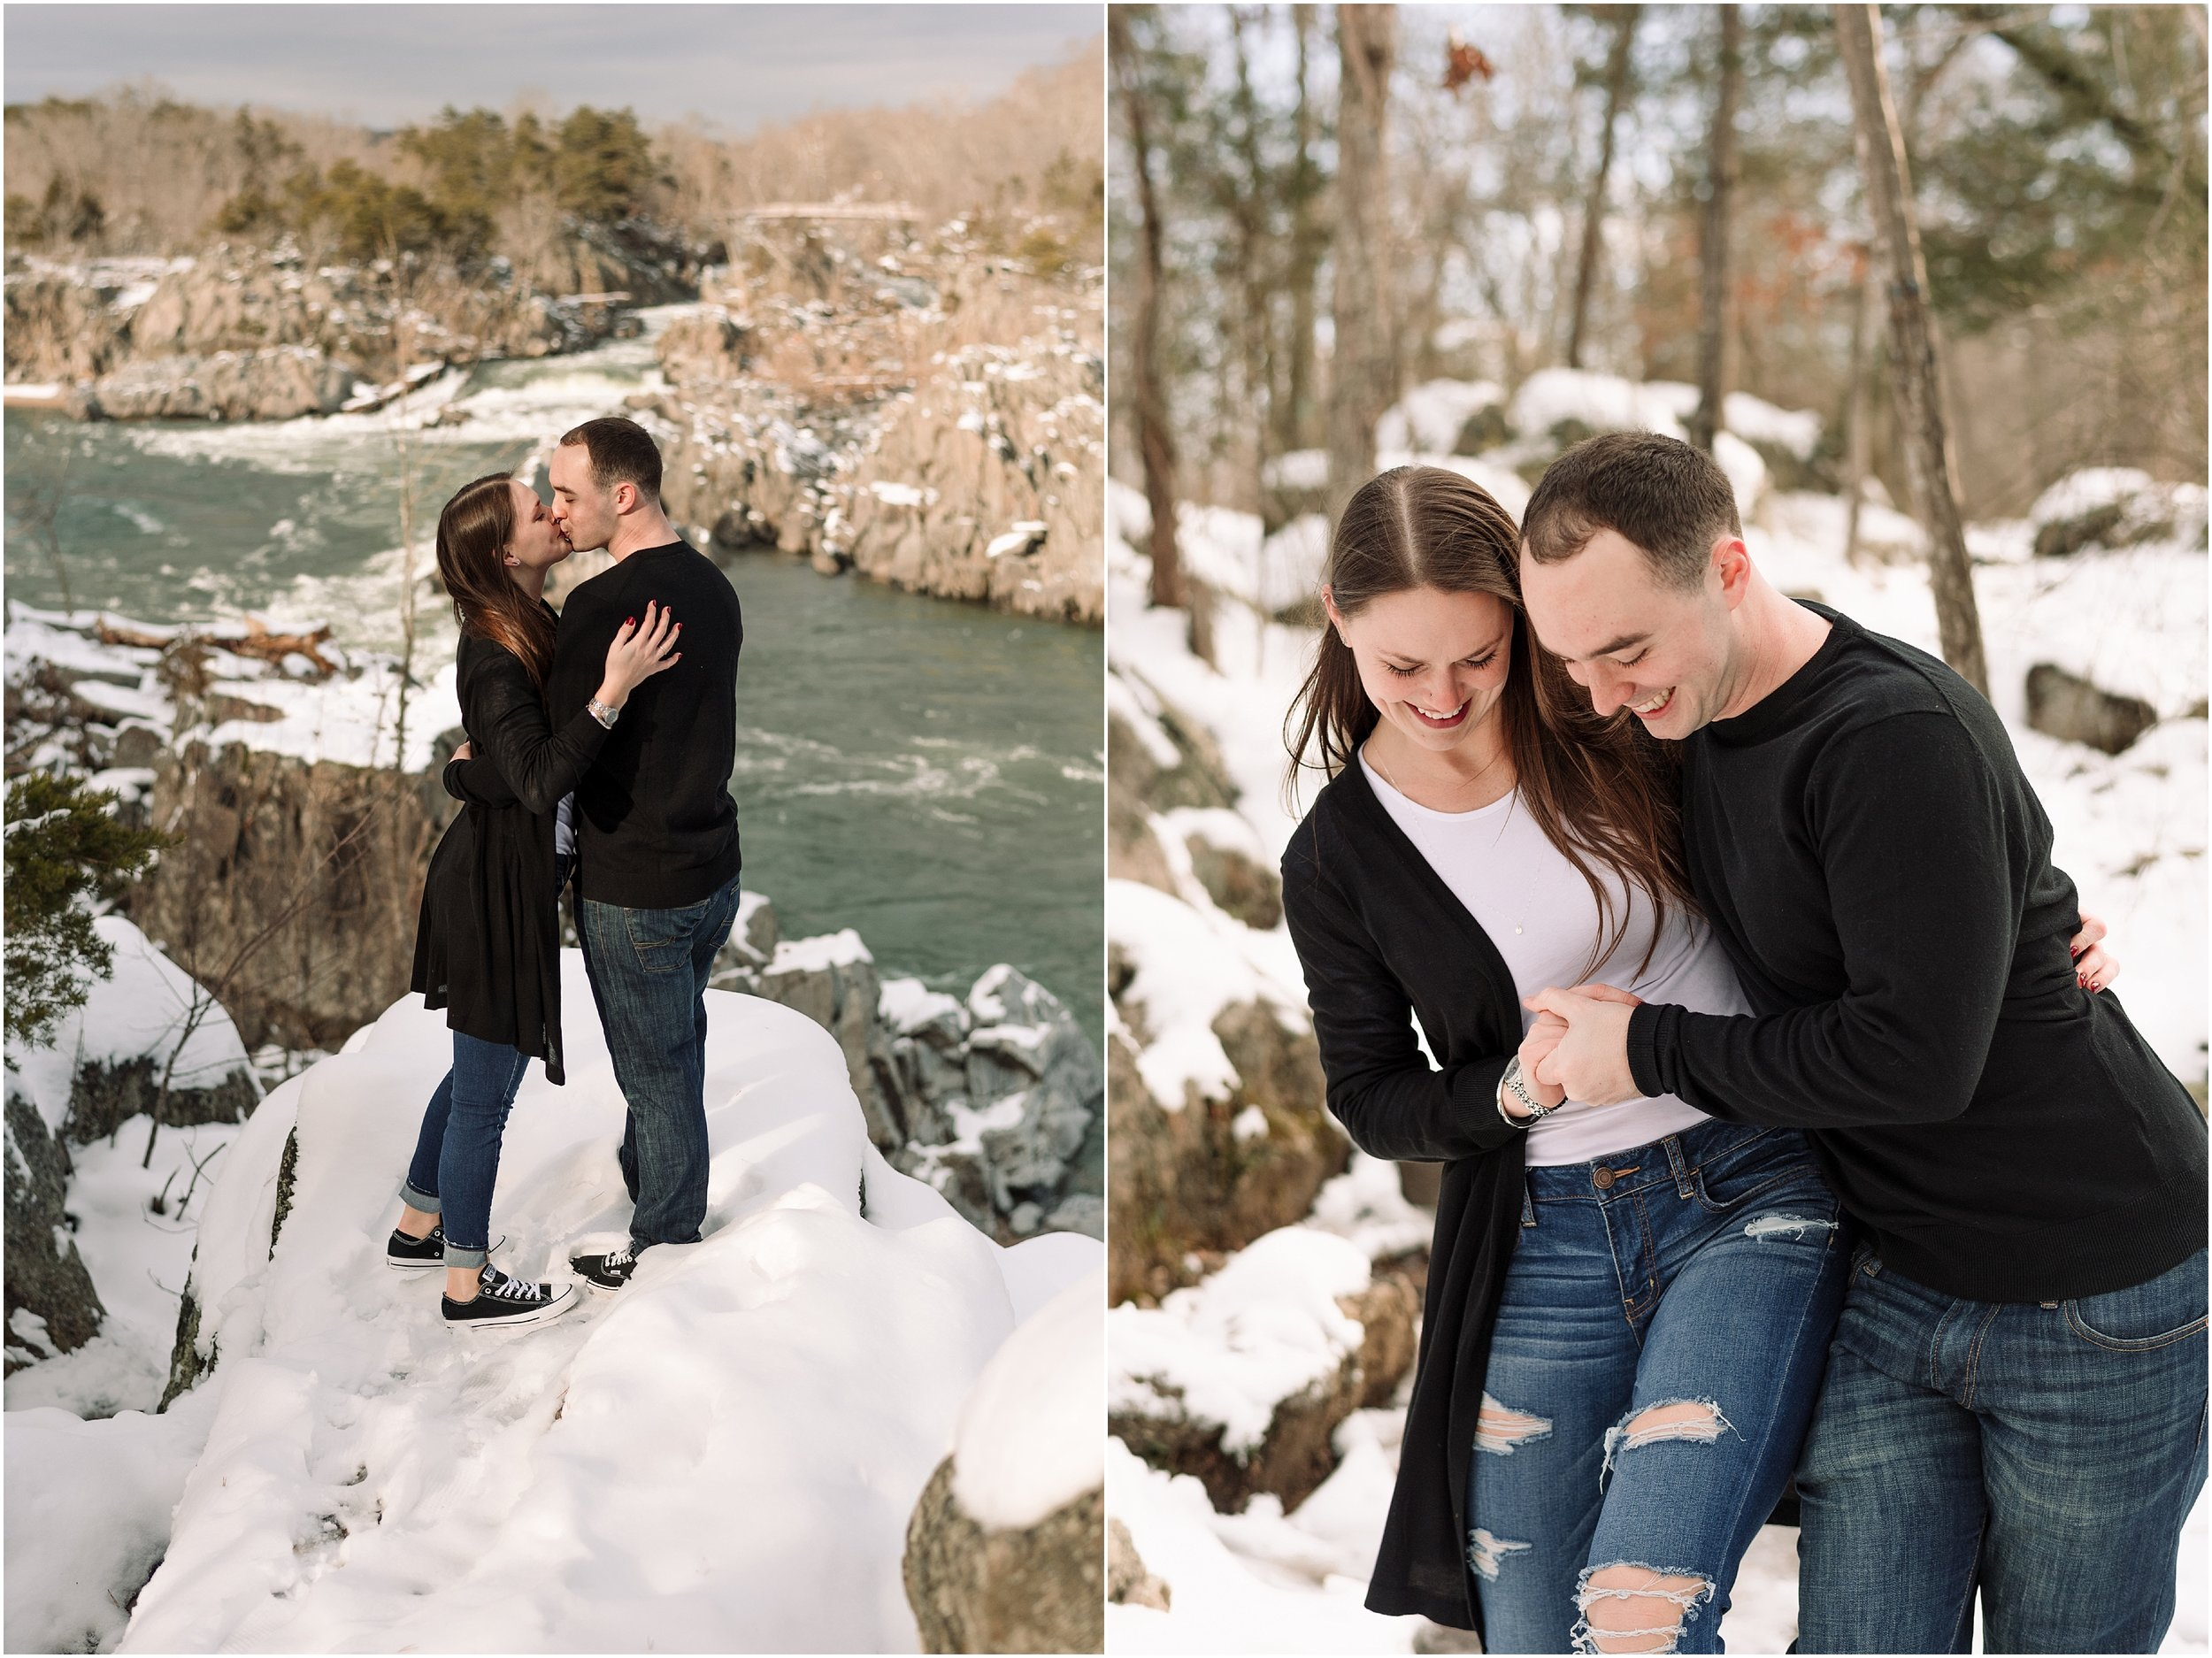 hannah leigh photography great falls virginia engagement session_2828.jpg